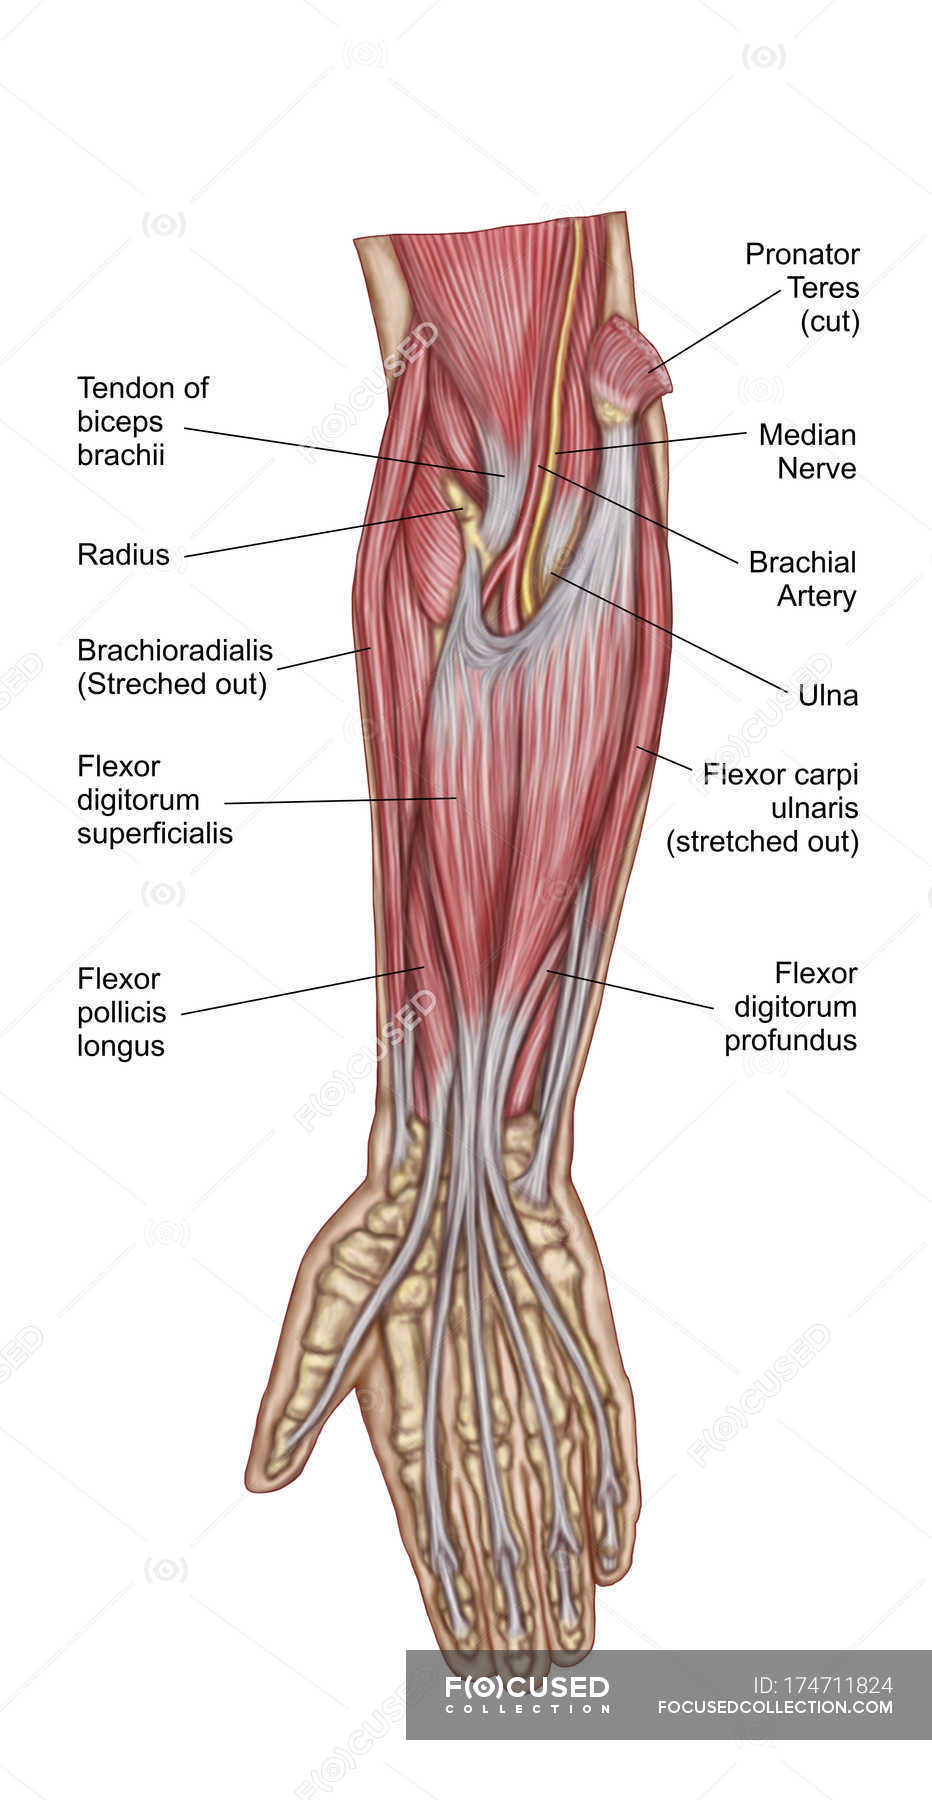 Anatomy Of Human Forearm Muscles With Labels Stock Photo 174711824